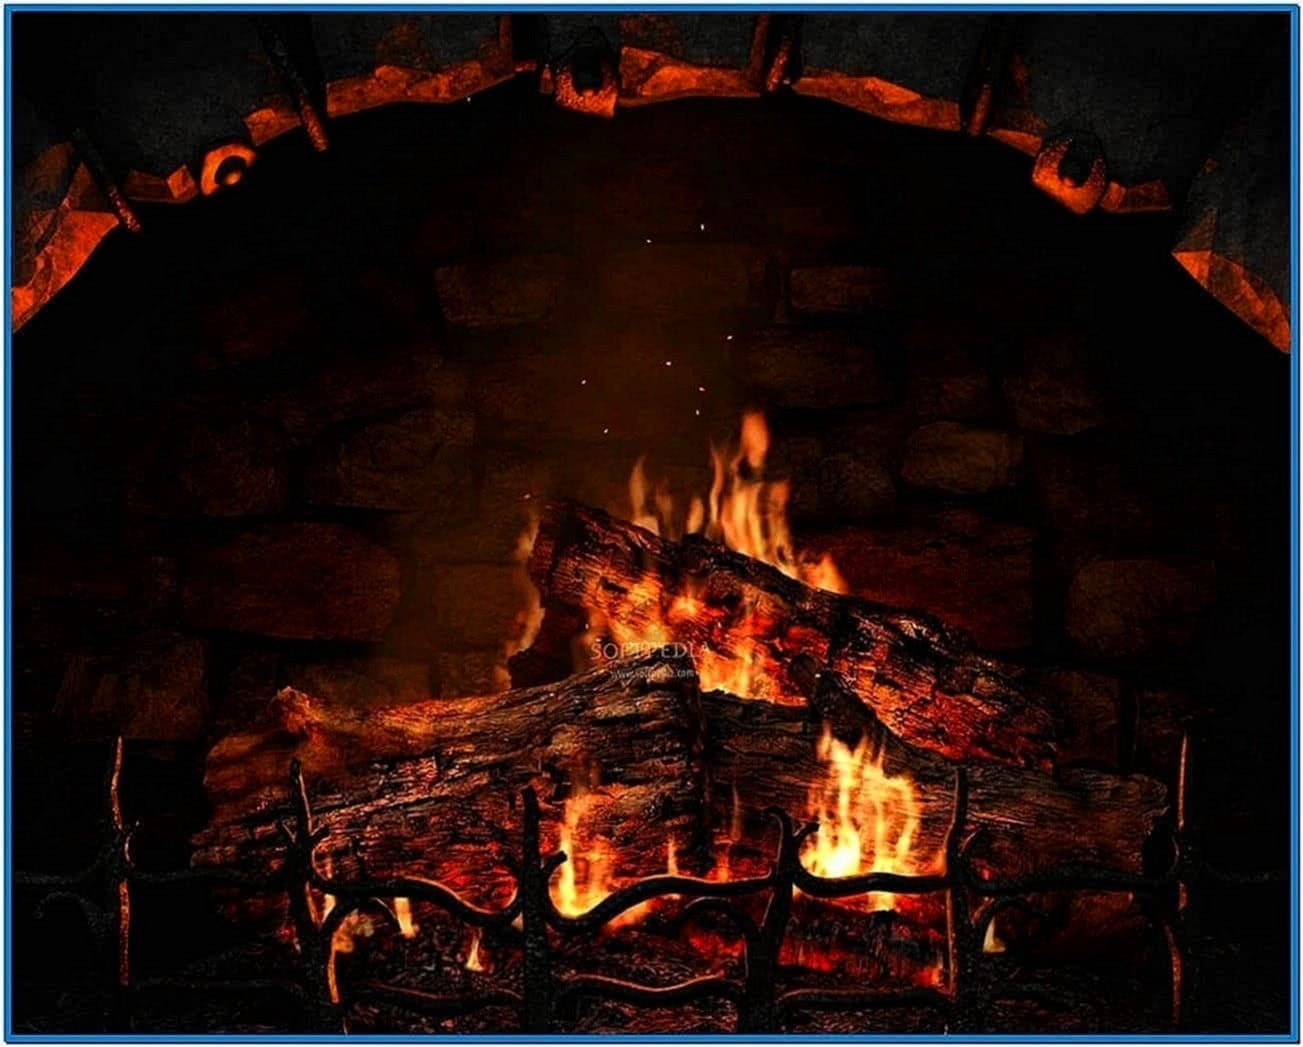 Best Fireplace Screensaver